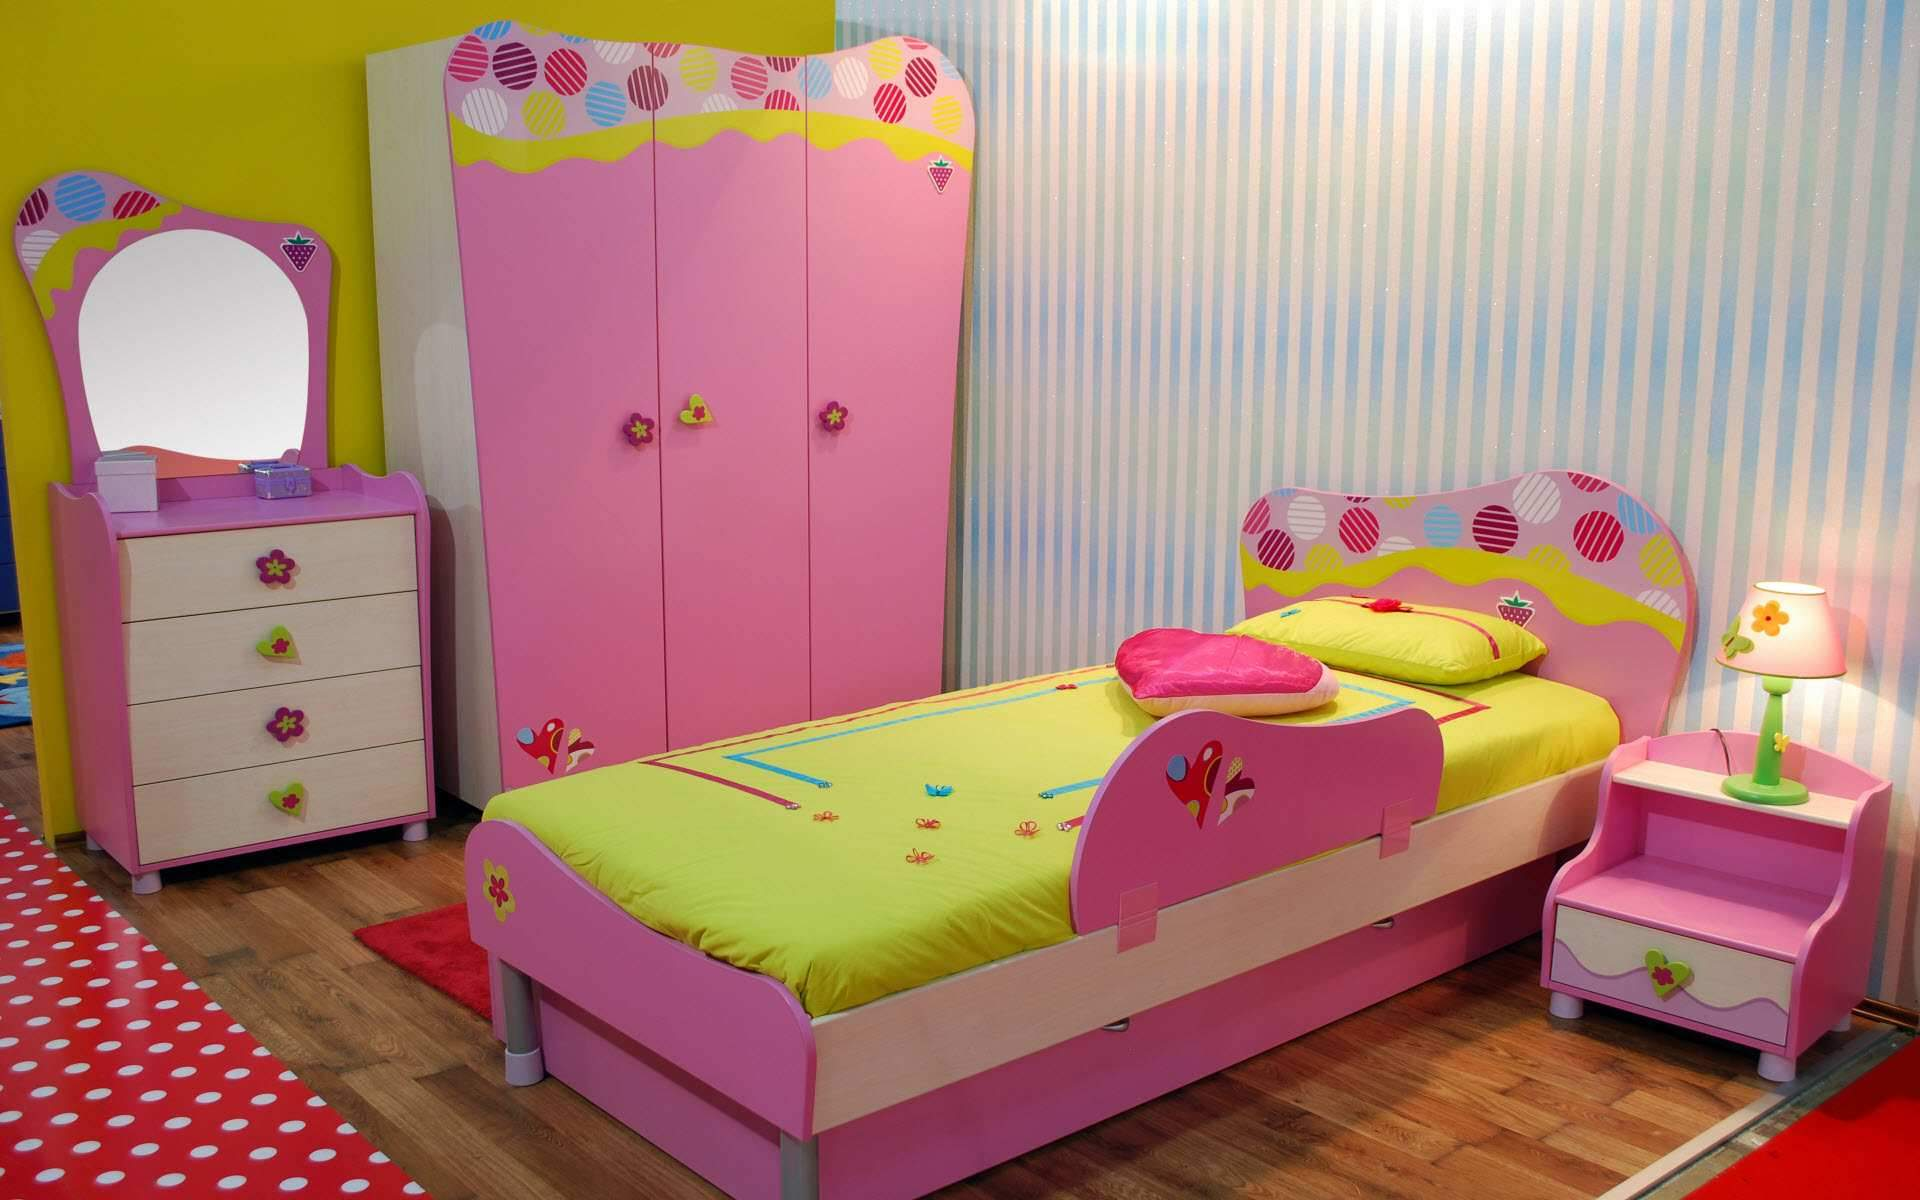 kids bedroom decoration decor kids bedroom home decorating ideas kids bedroom decorating TJCUCHC